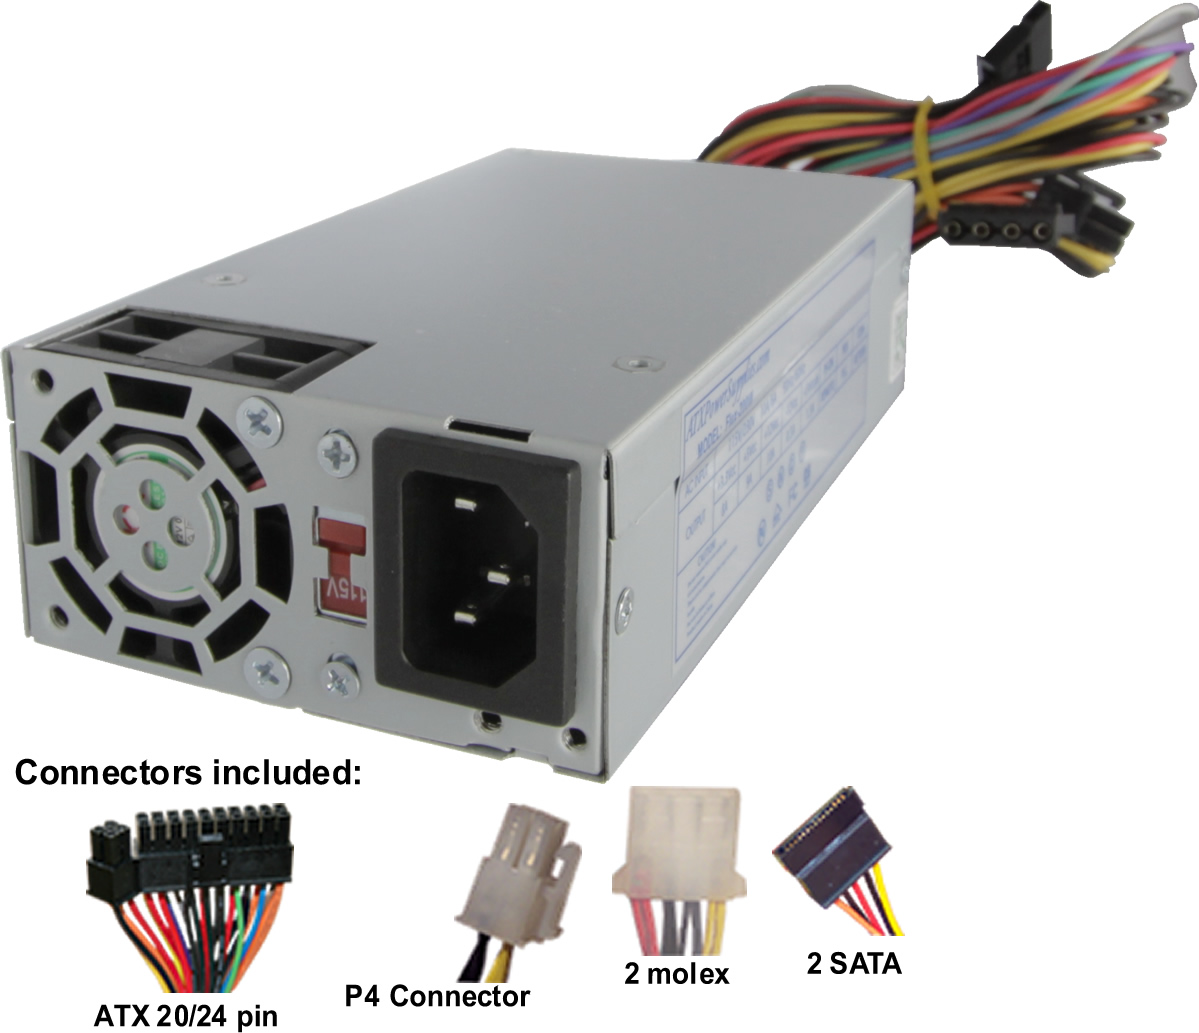 200 Watt Flex ATX Power Supply for Shuttle Computers